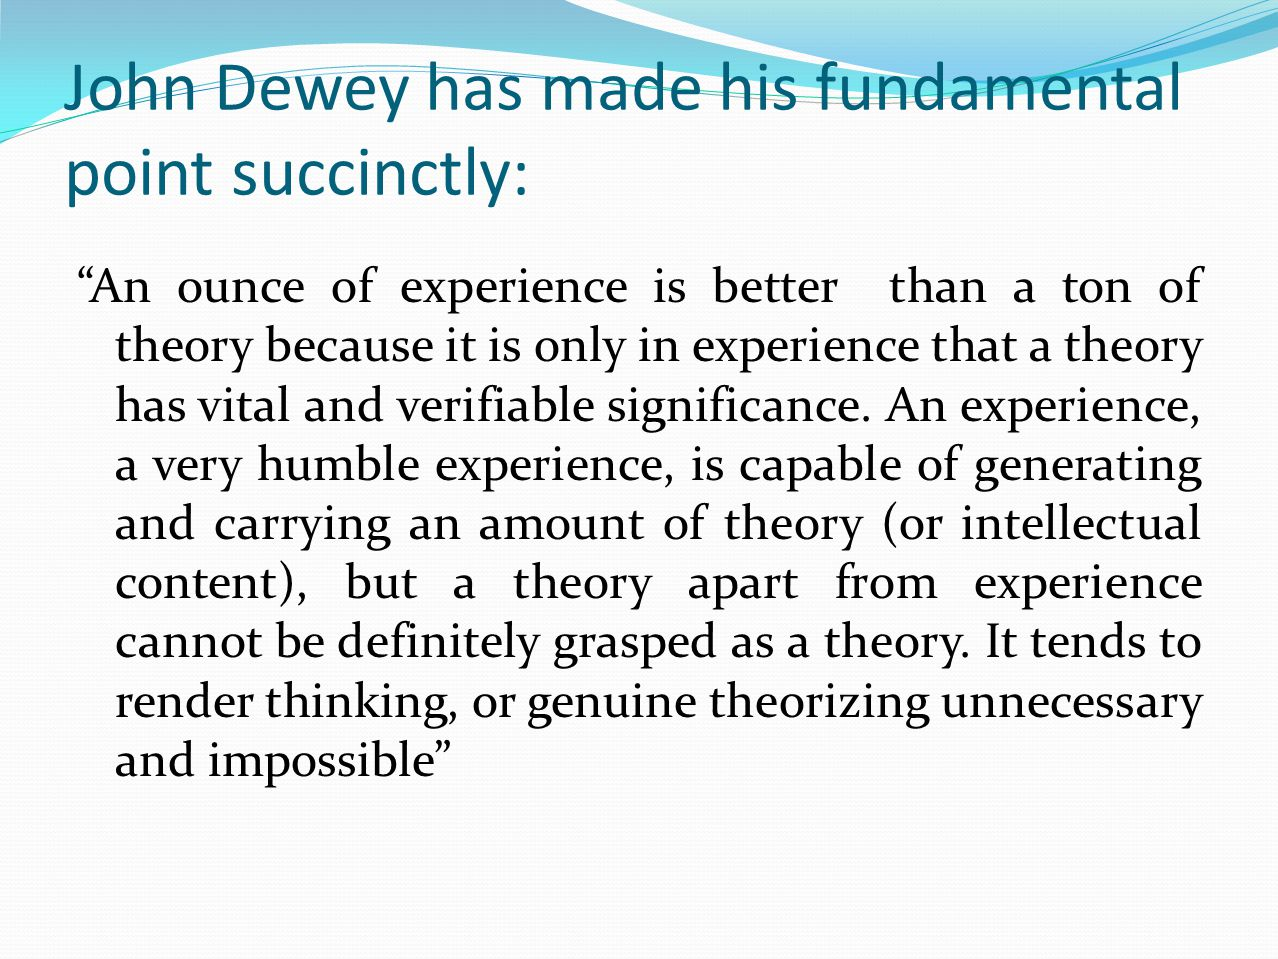 John Dewey has made his fundamental point succinctly: